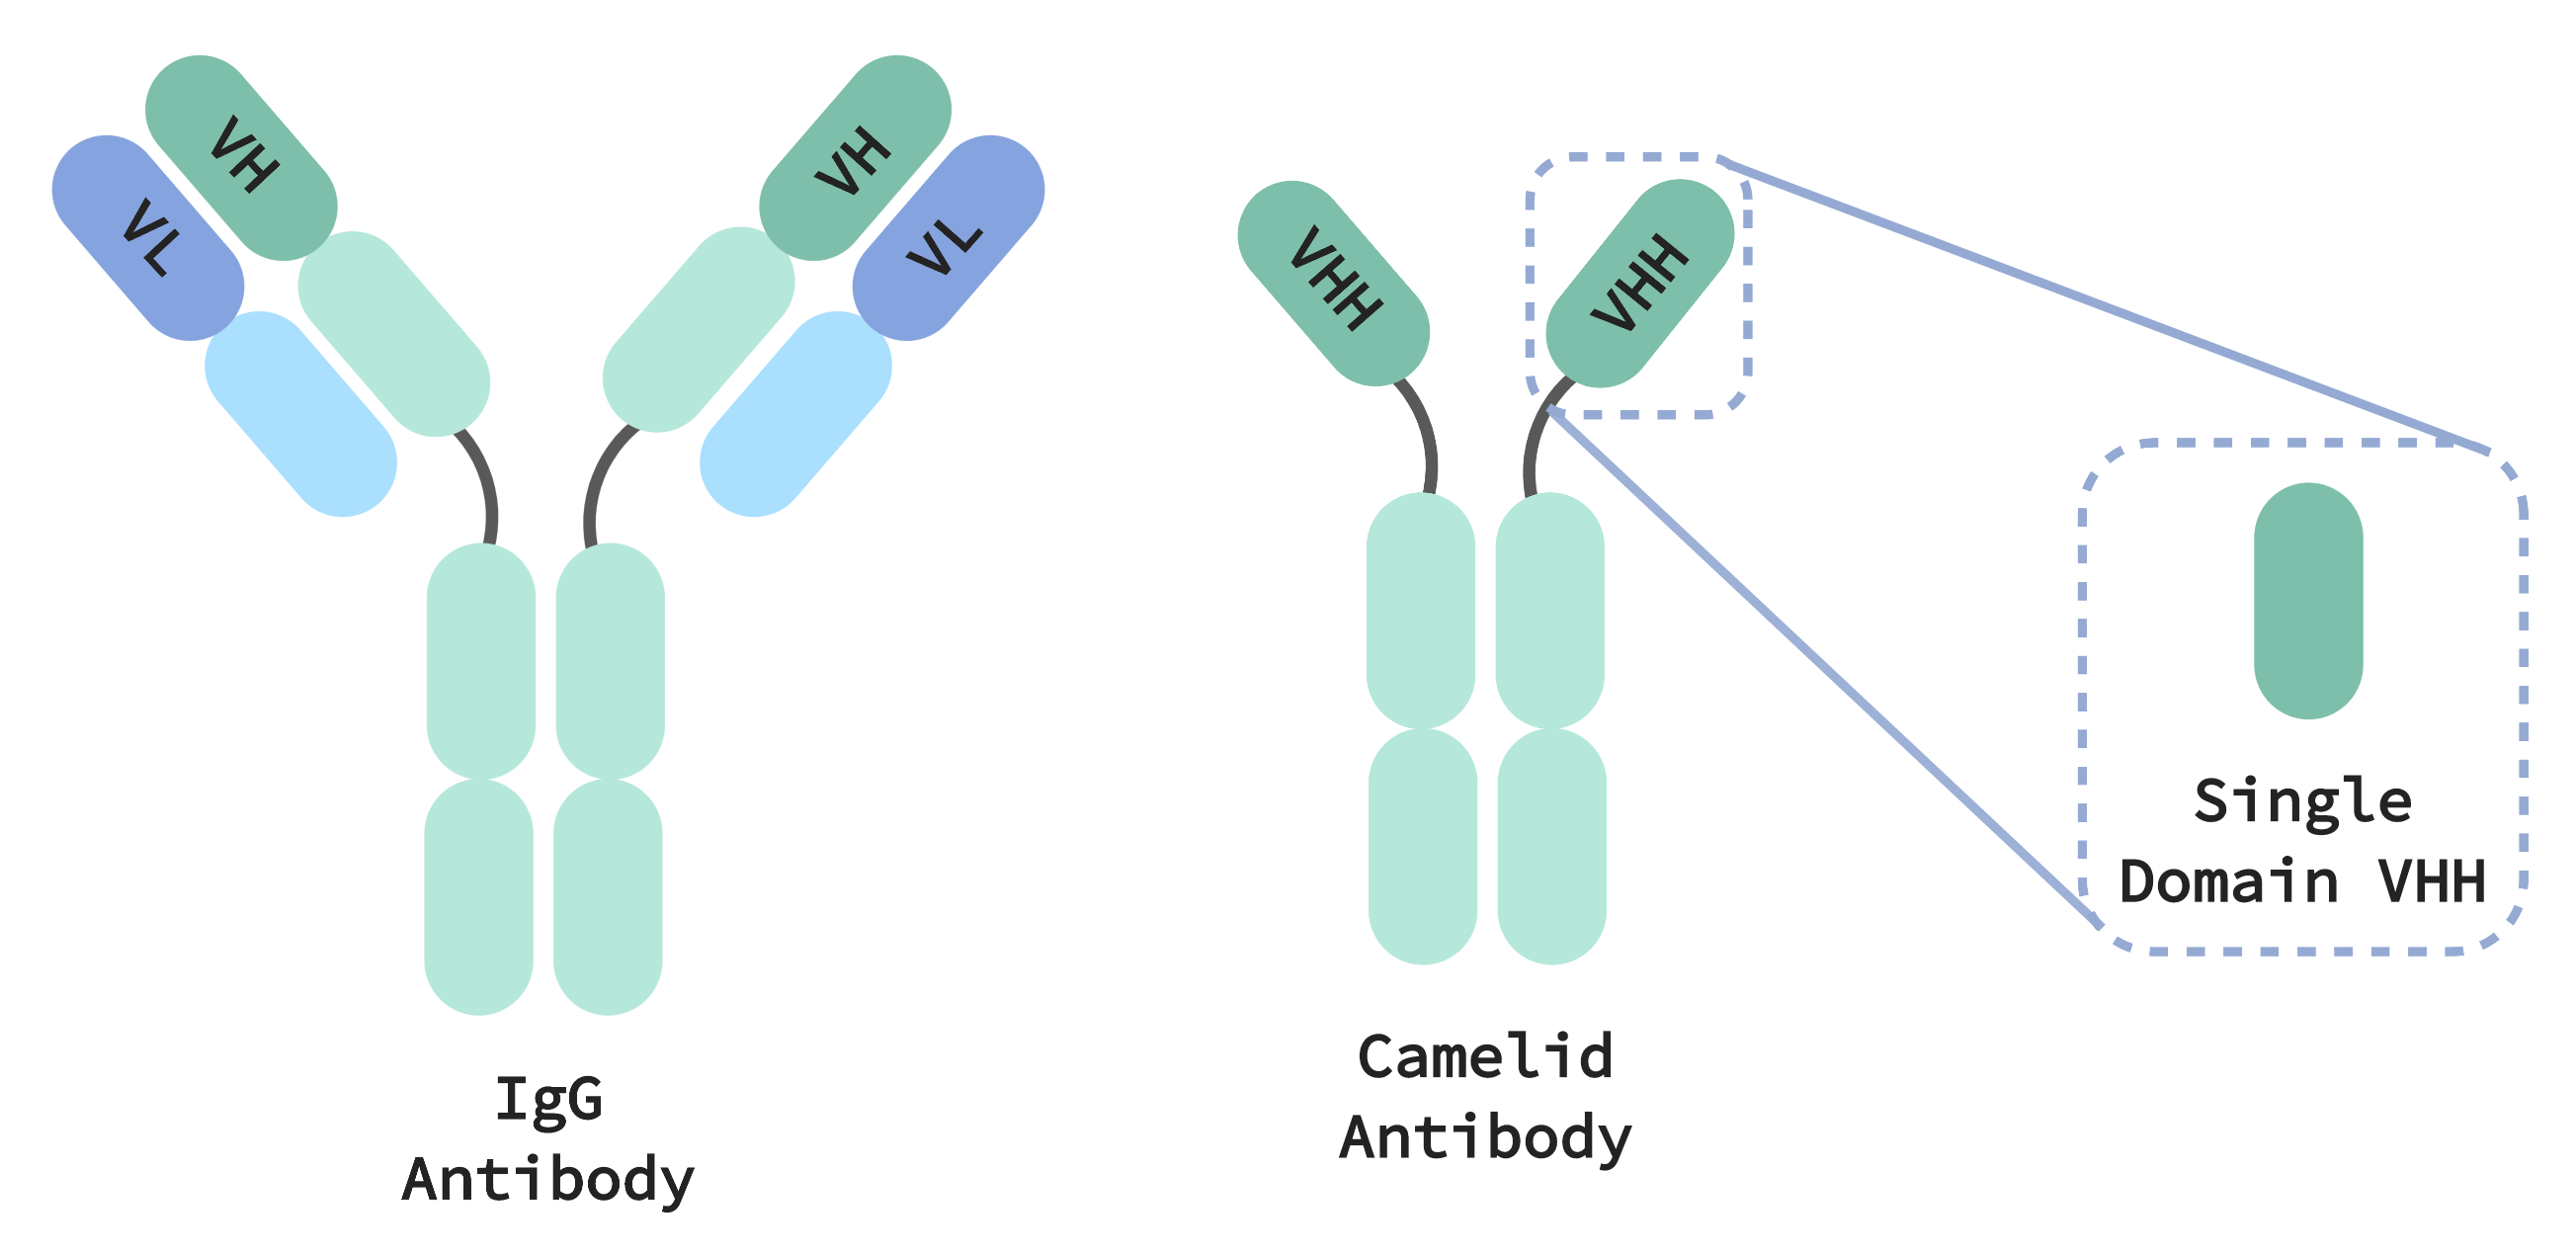 Camelid antibodies are smaller than IgG